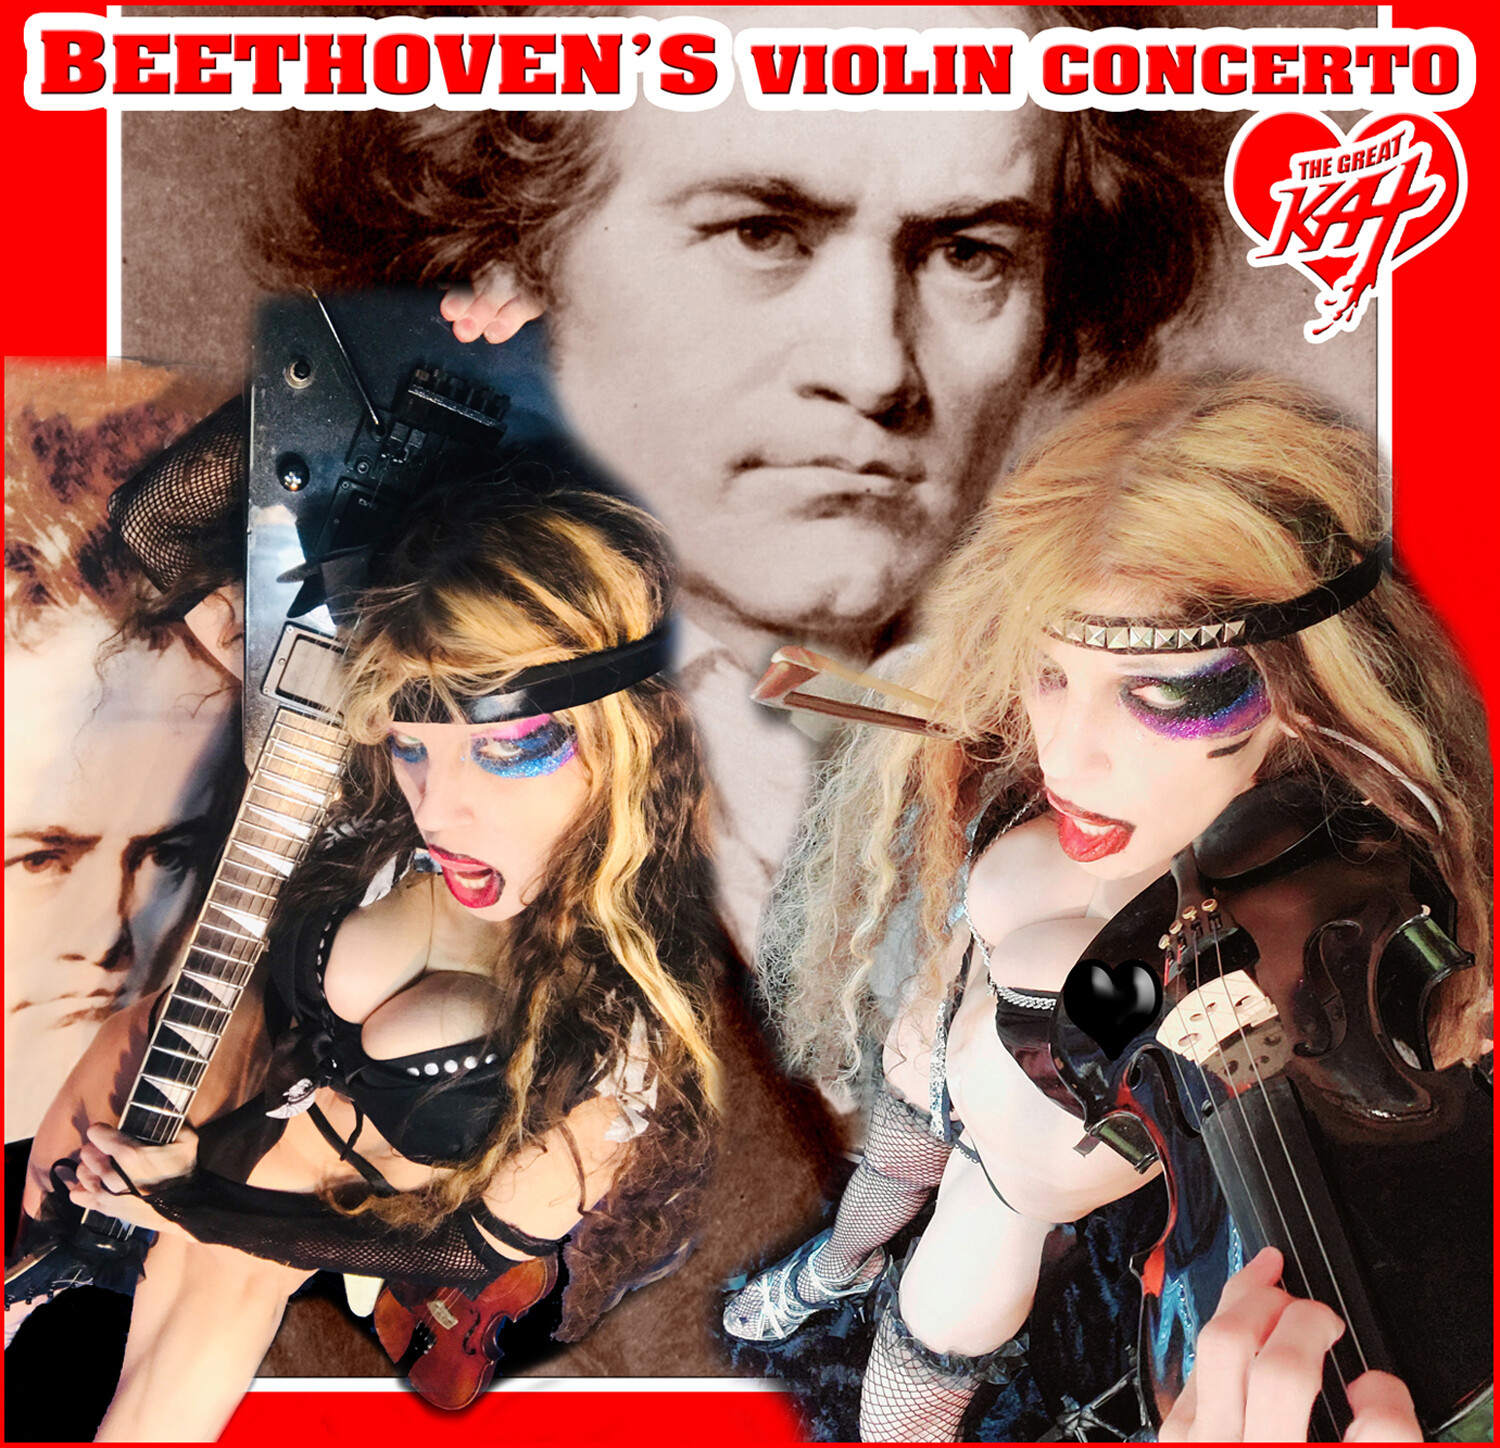 "NEW BEETHOVEN'S ""VIOLIN CONCERTO"" SINGLE Music CD by THE GREAT KAT for Guitar & Violin (1:31)! PERSONALIZED AUTOGRAPHED by THE GREAT KAT! (Signed to Customer's Name)! HAPPY BEETHOVEN'S 250TH BIRTHDAY!"